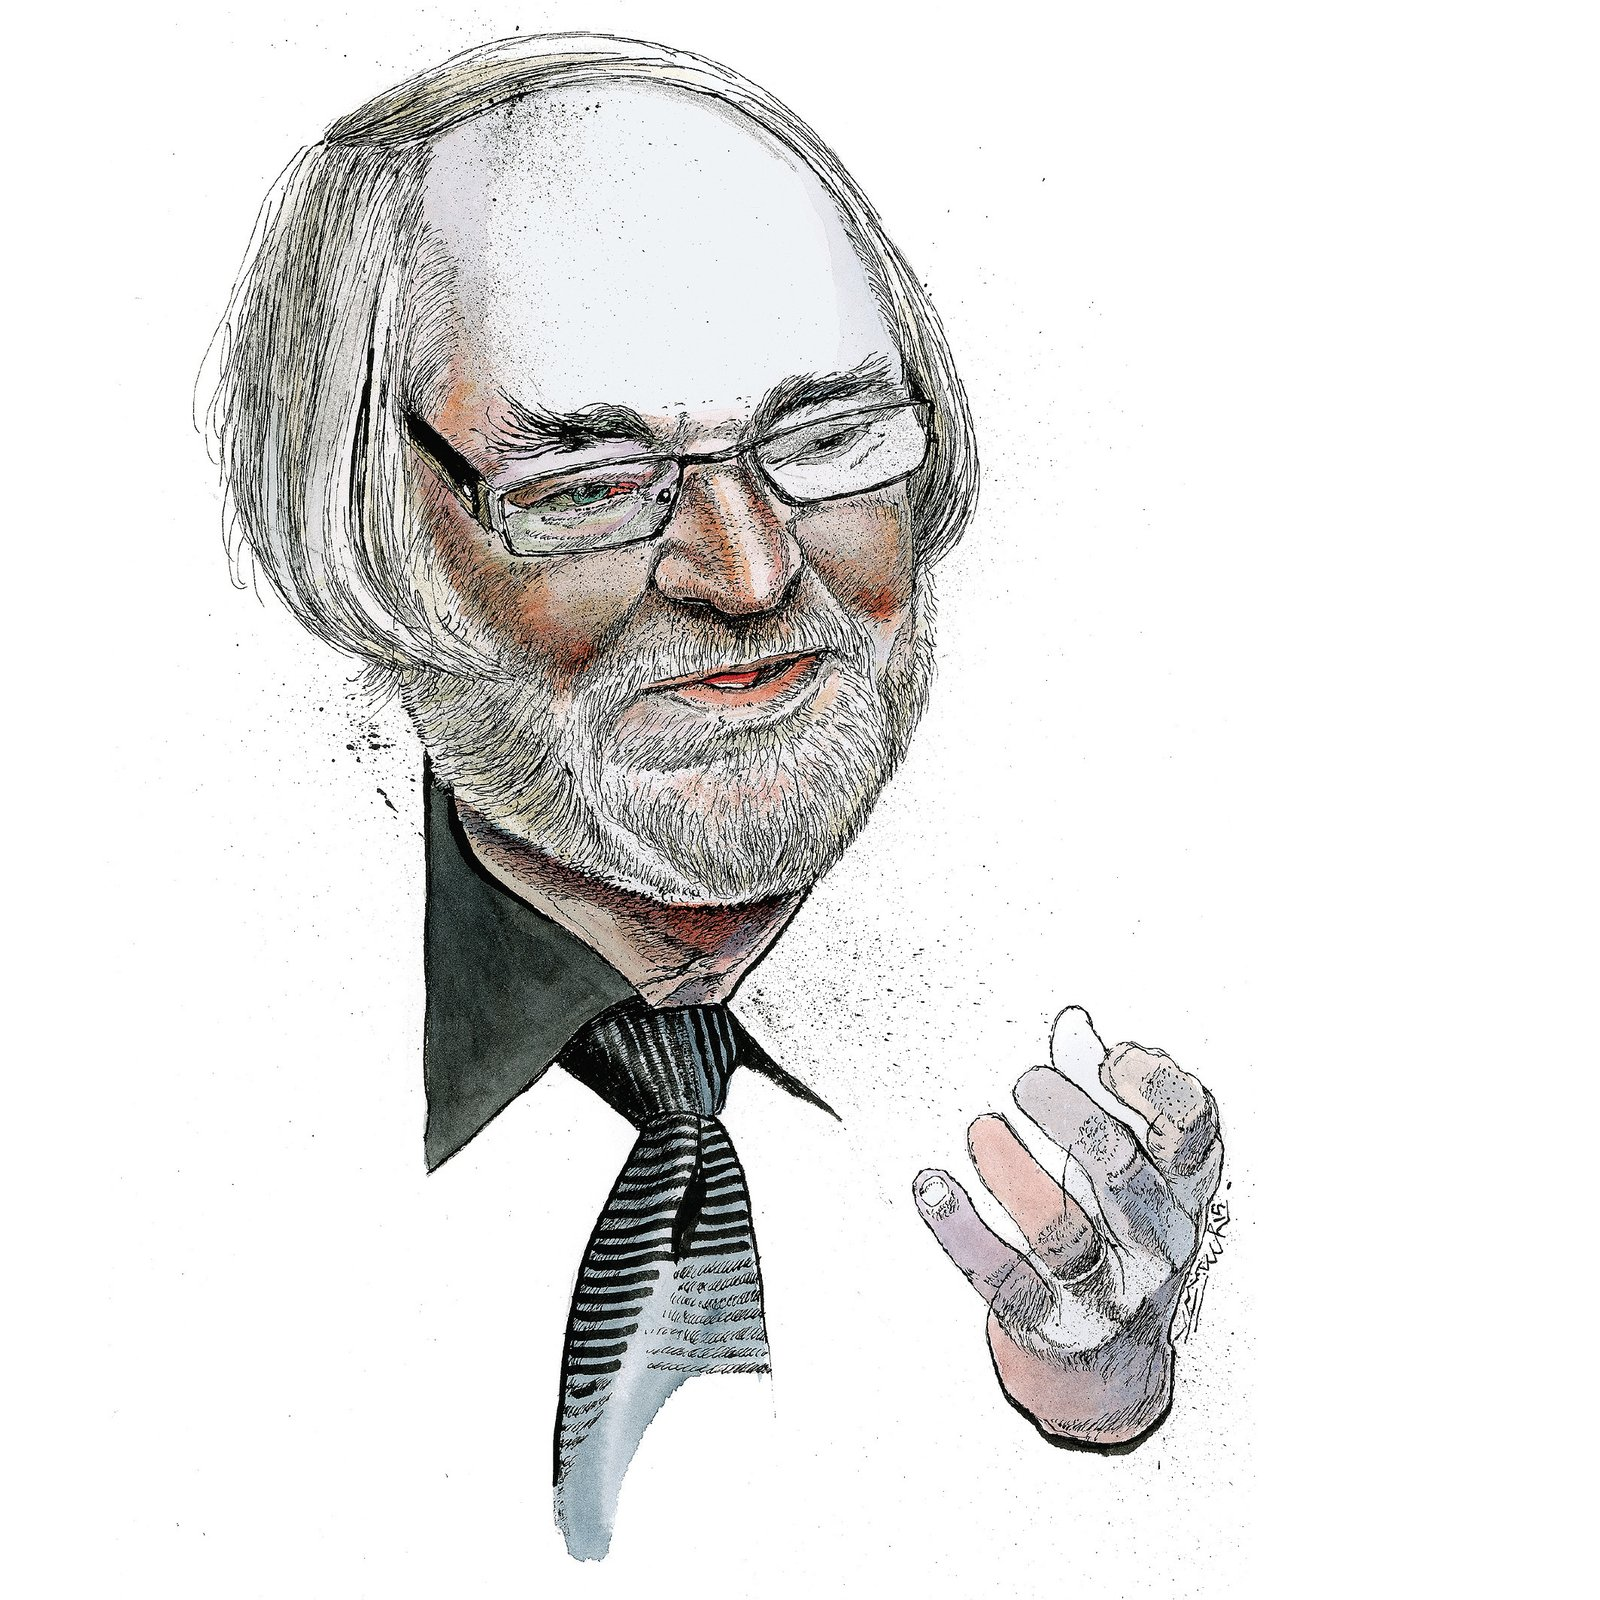 Juhani Pallasmaa on Humane Cities, Monumental Architecture, and the Architect's Role in Society